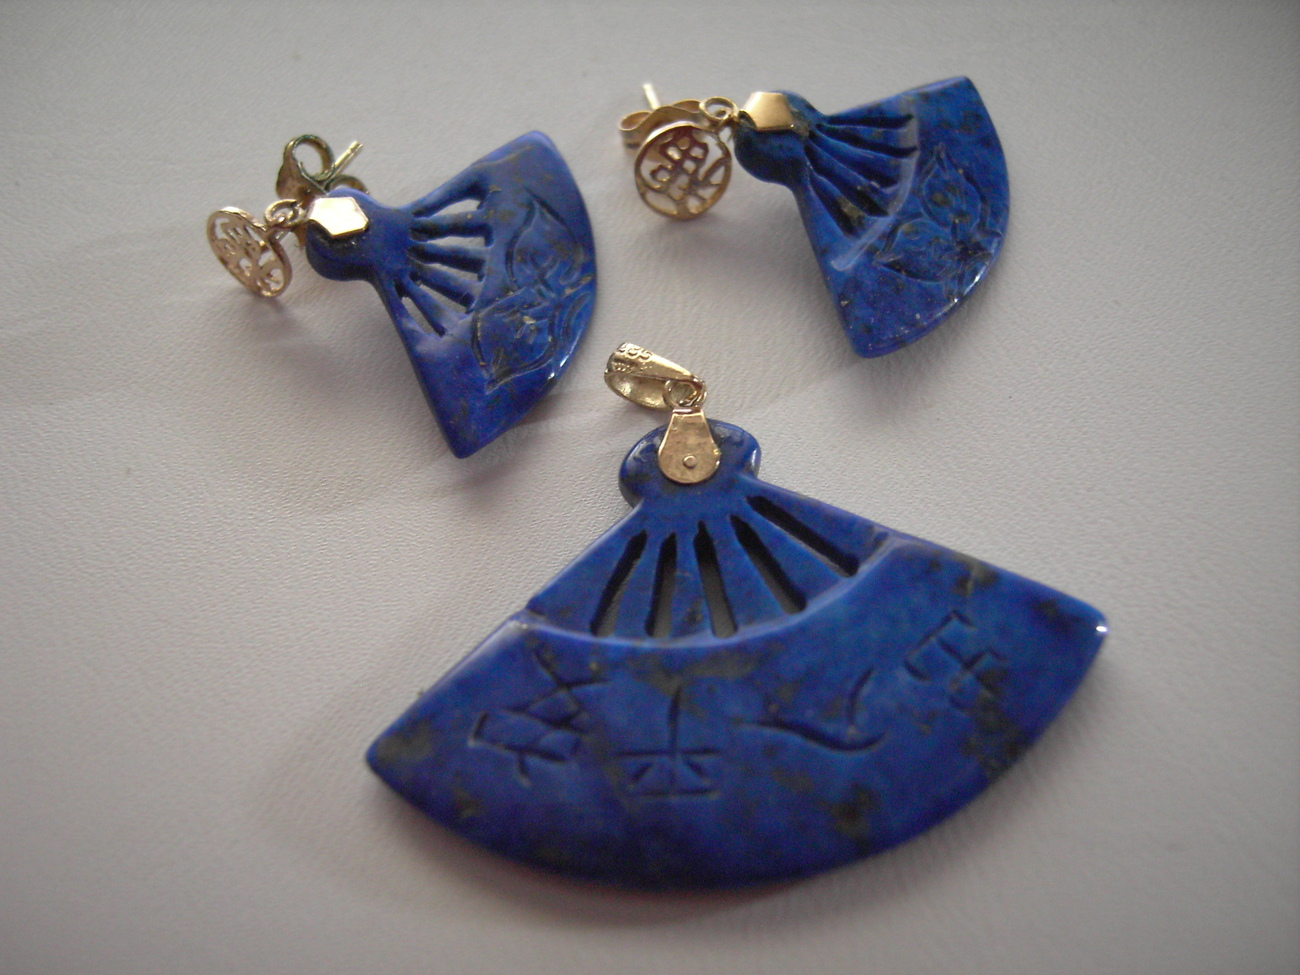 14k Solid Gold Lapis Lazuli Earrings  and Pendant Fan Design